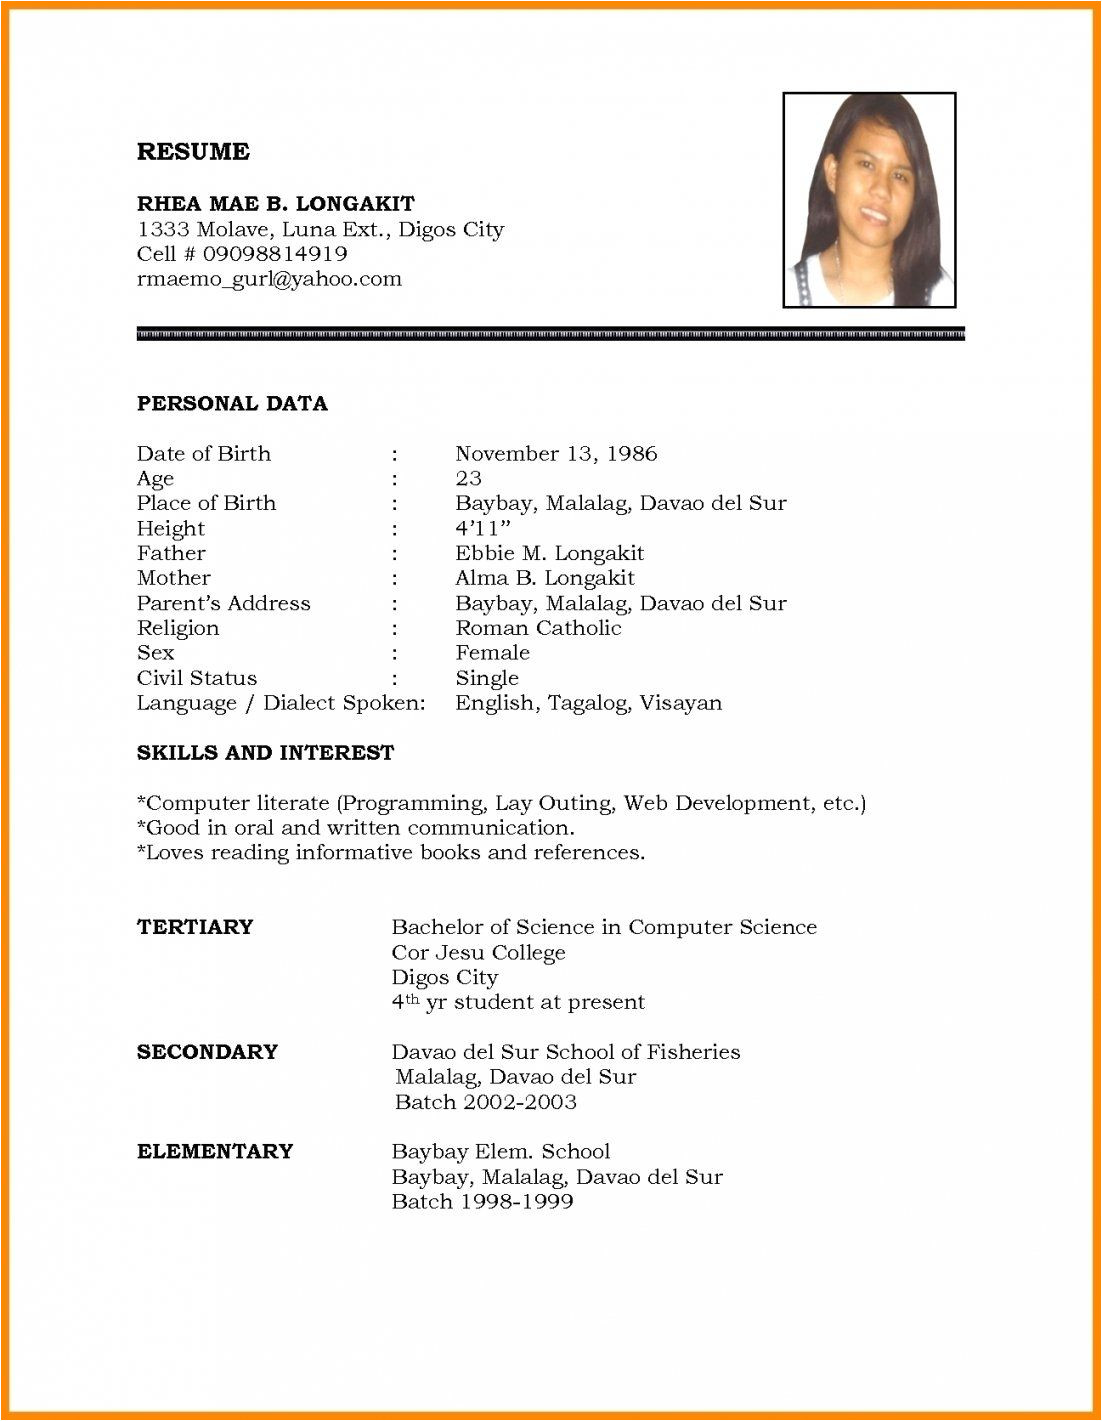 Marriage Resume format Word File Download Marriage Resume format Word File Beautiful Biodata Doc In